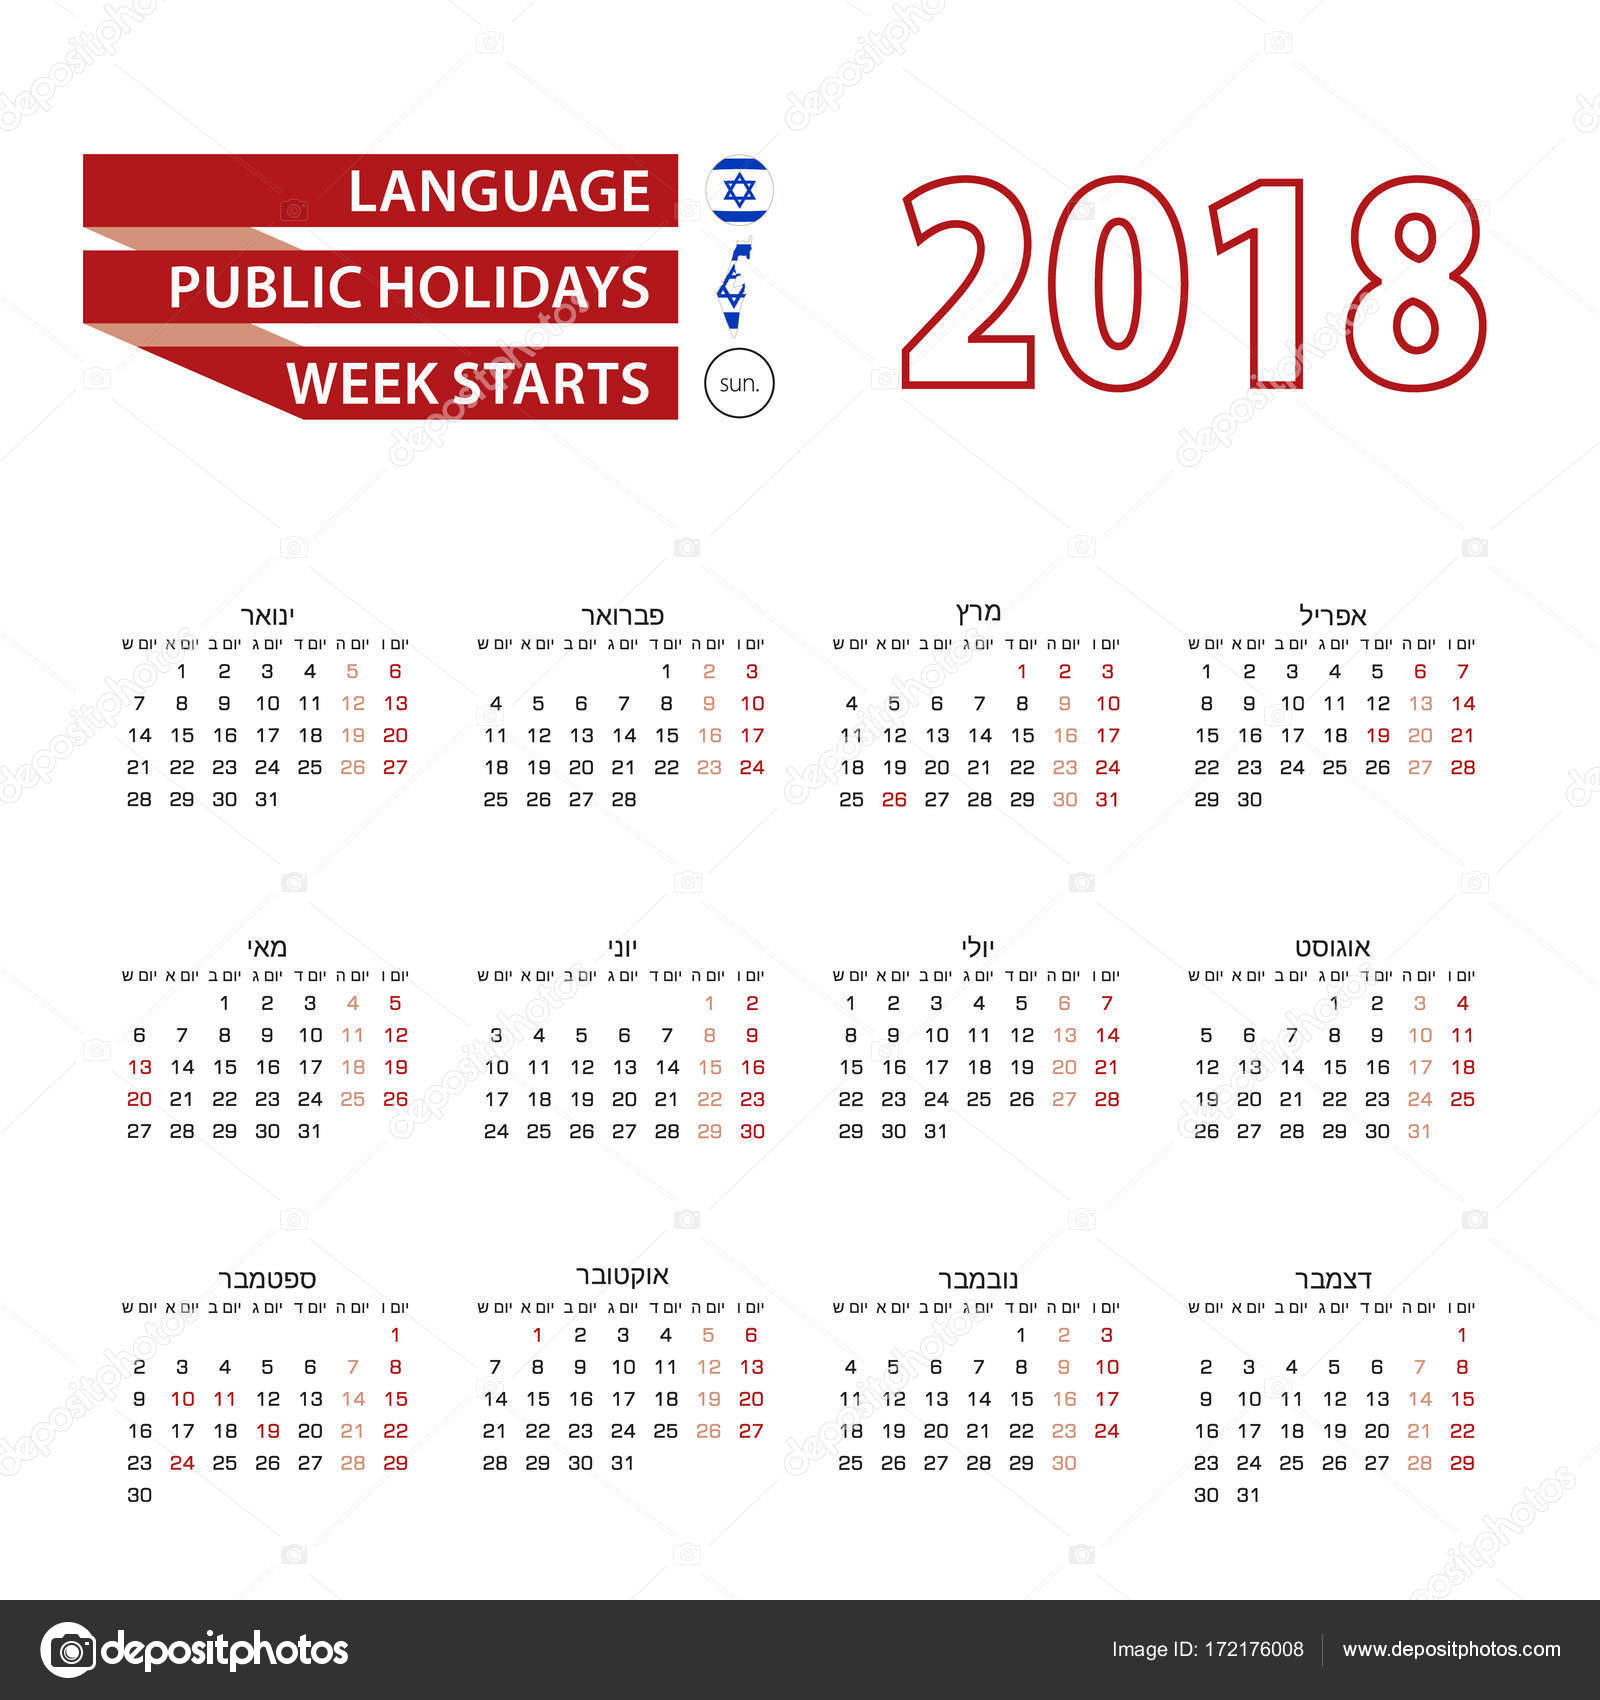 Calendar 2018 in Hebrew language with public holidays the